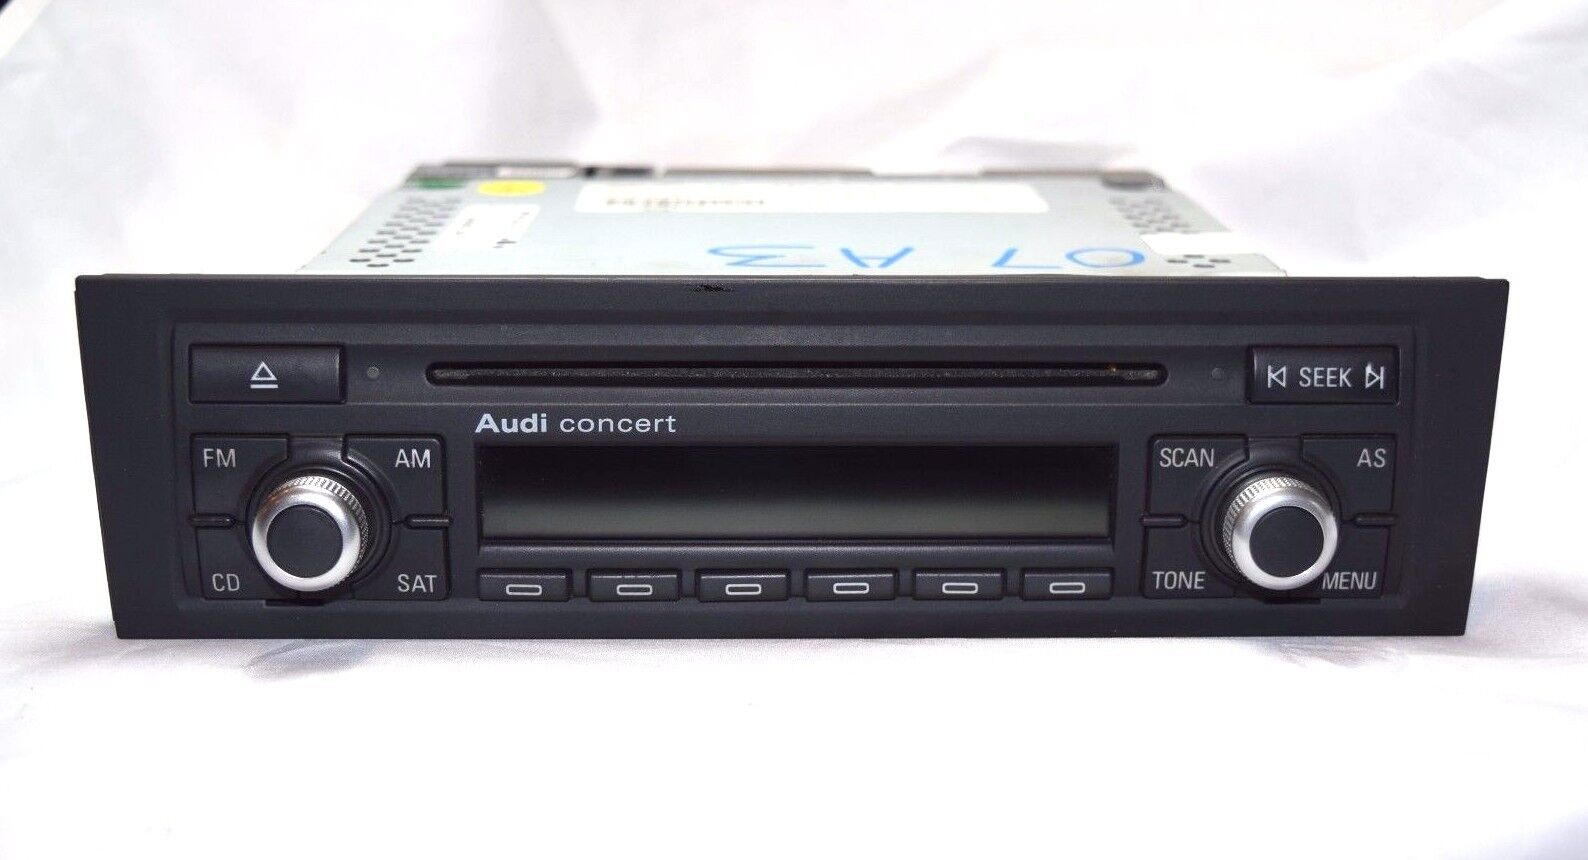 audi a3 a4 concert ii cd player radio stereo 2006 2007. Black Bedroom Furniture Sets. Home Design Ideas